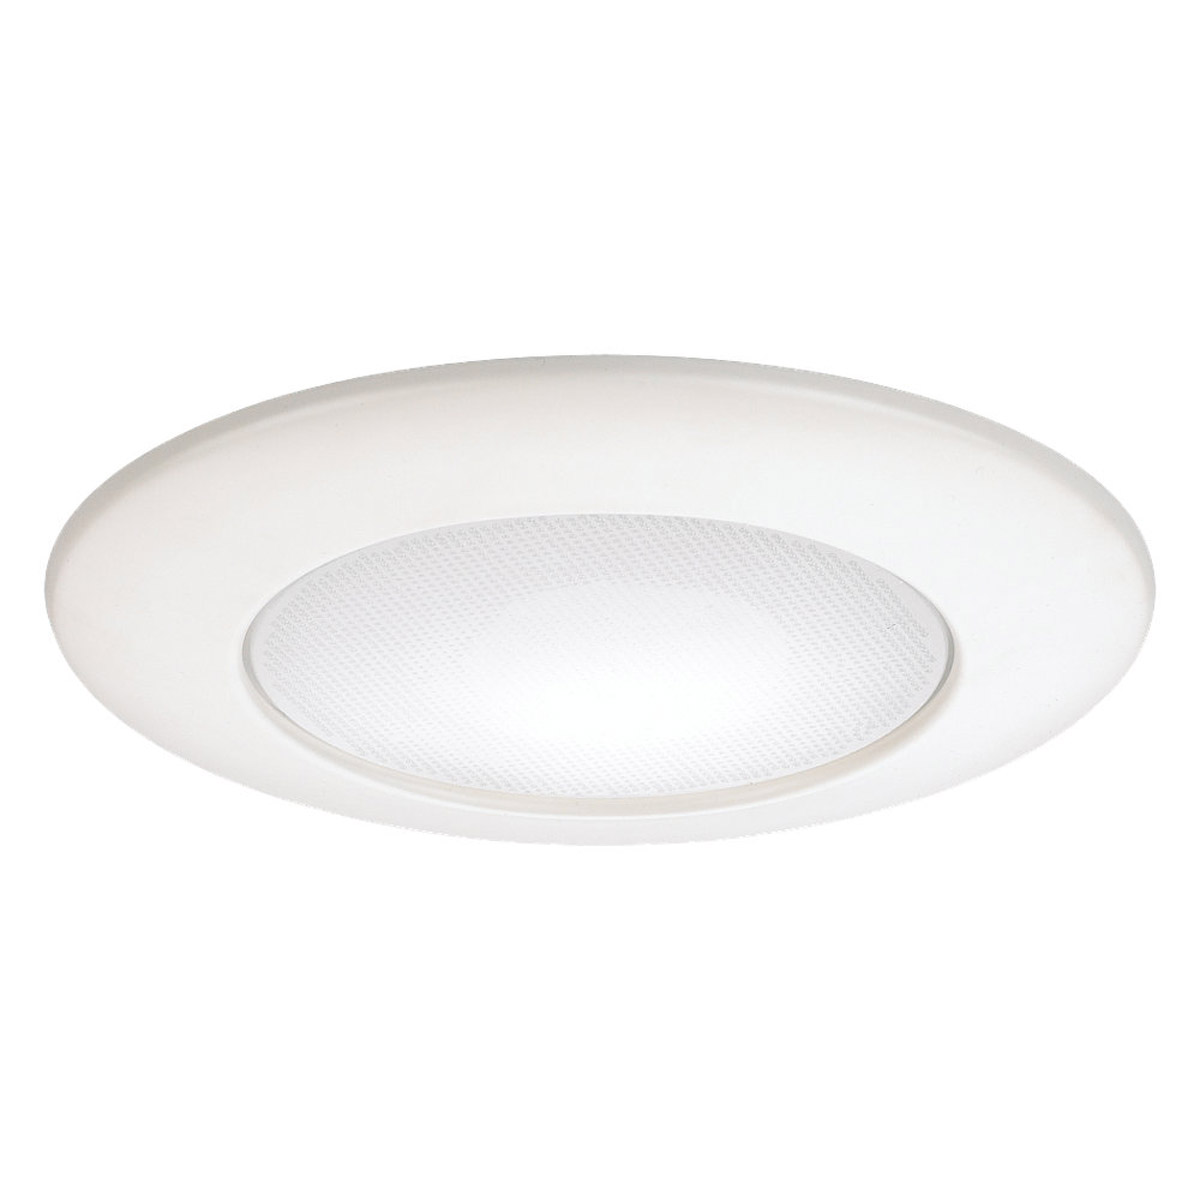 Sea Gull Lighting Signature Recessed Trim Only in White 1135AT-15